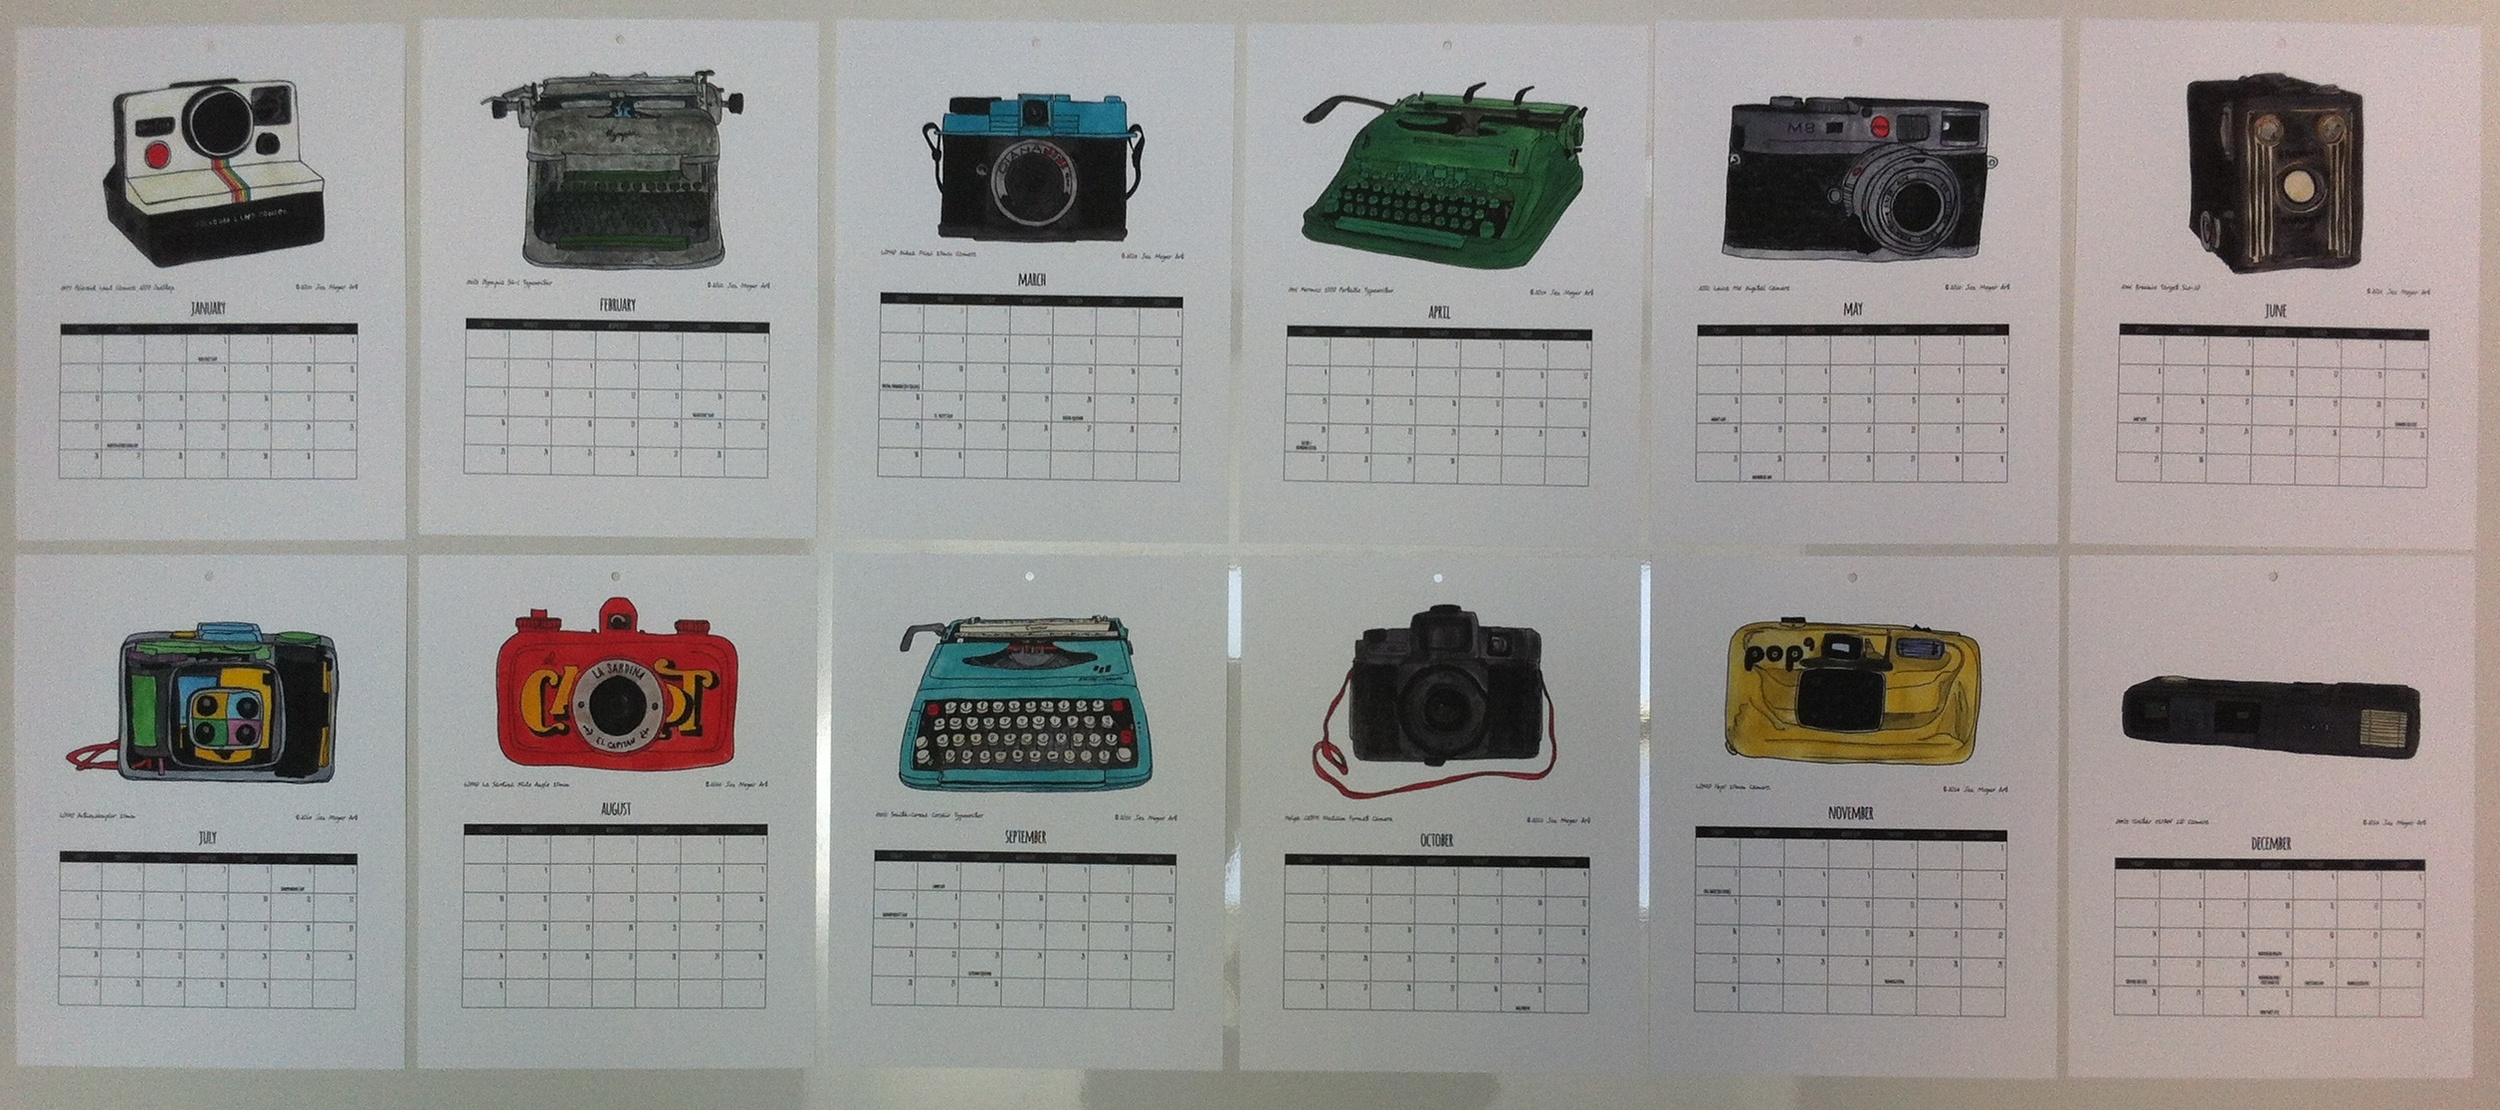 2014 calendar display by Jen Meyer